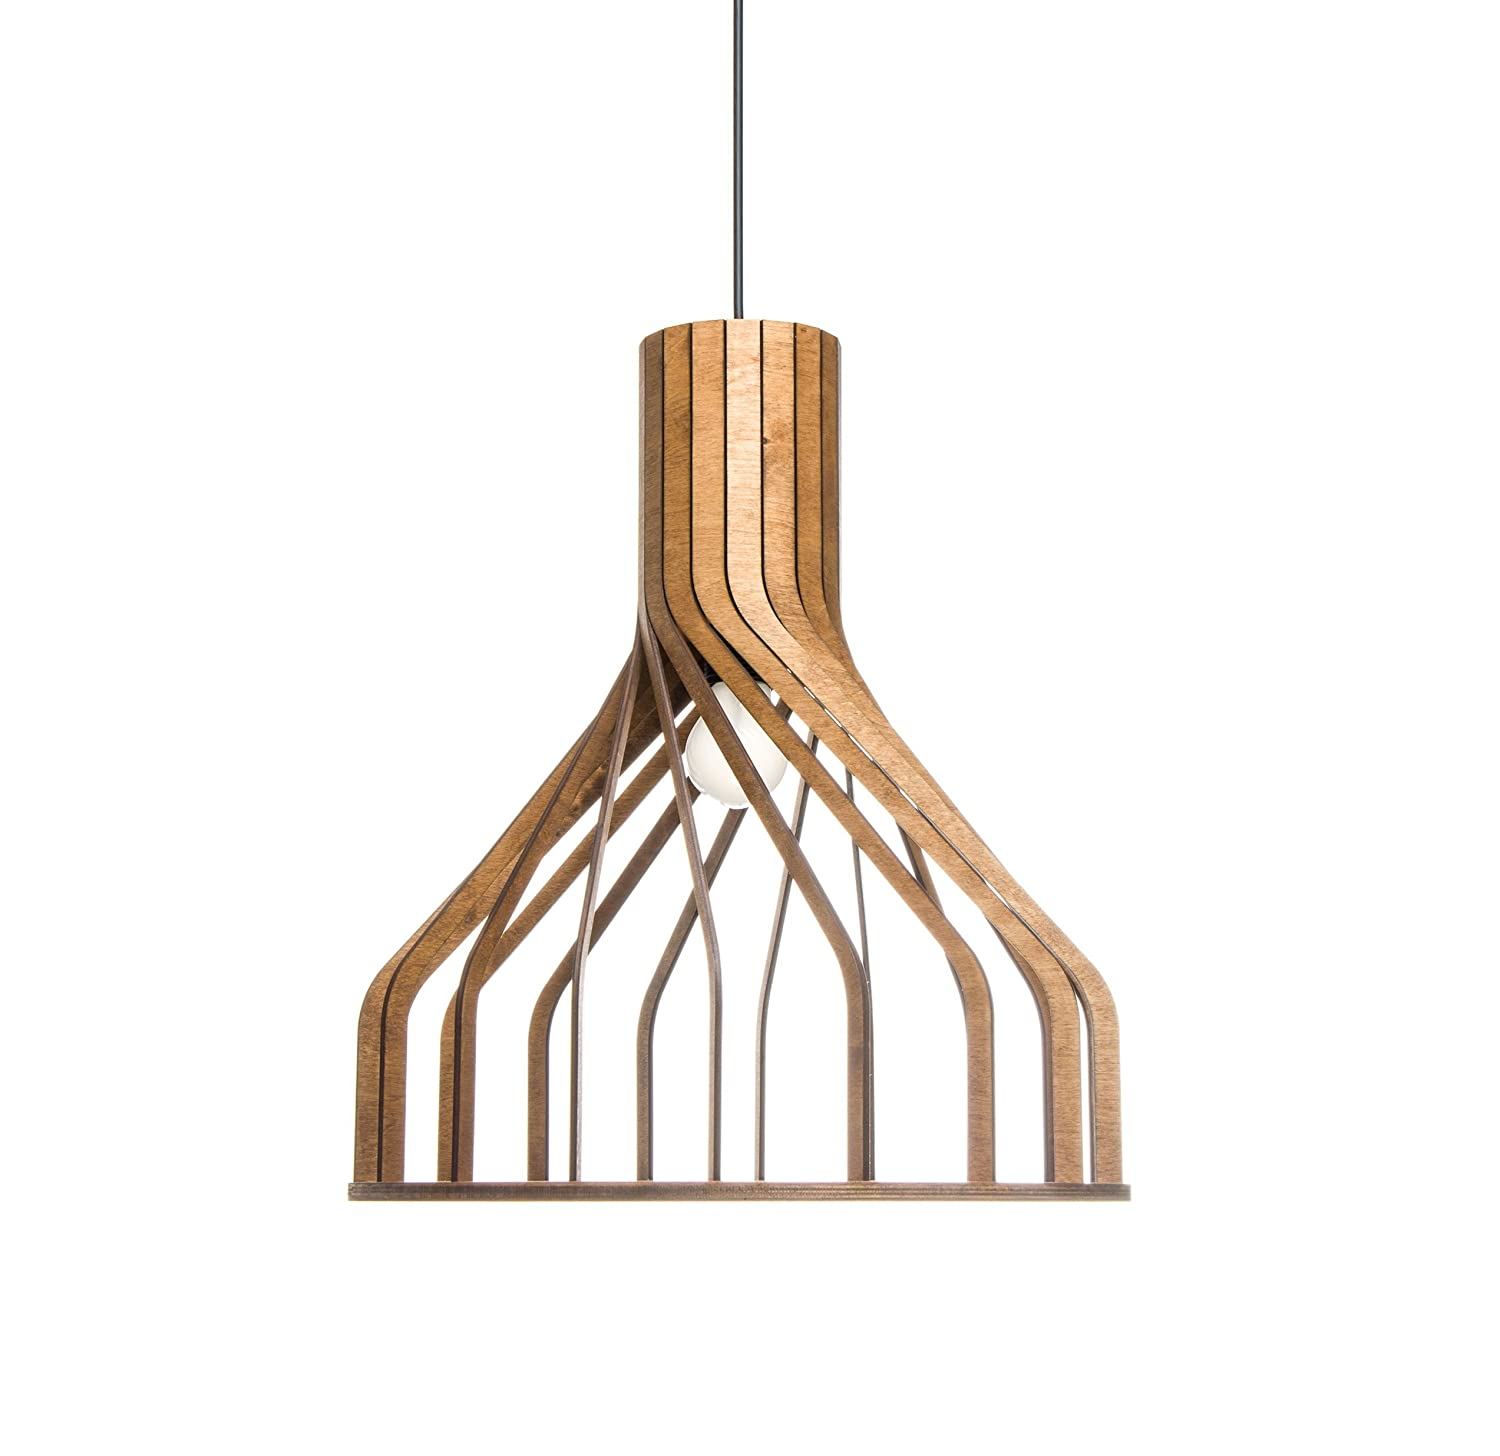 Wood pendant lighting for kitchen island - Dining room, living room hanging light fixture - Unique wooden lampshade for modern, minimalistic, Scandinavian, rustic interior styles ALREADY ASSEMBLED